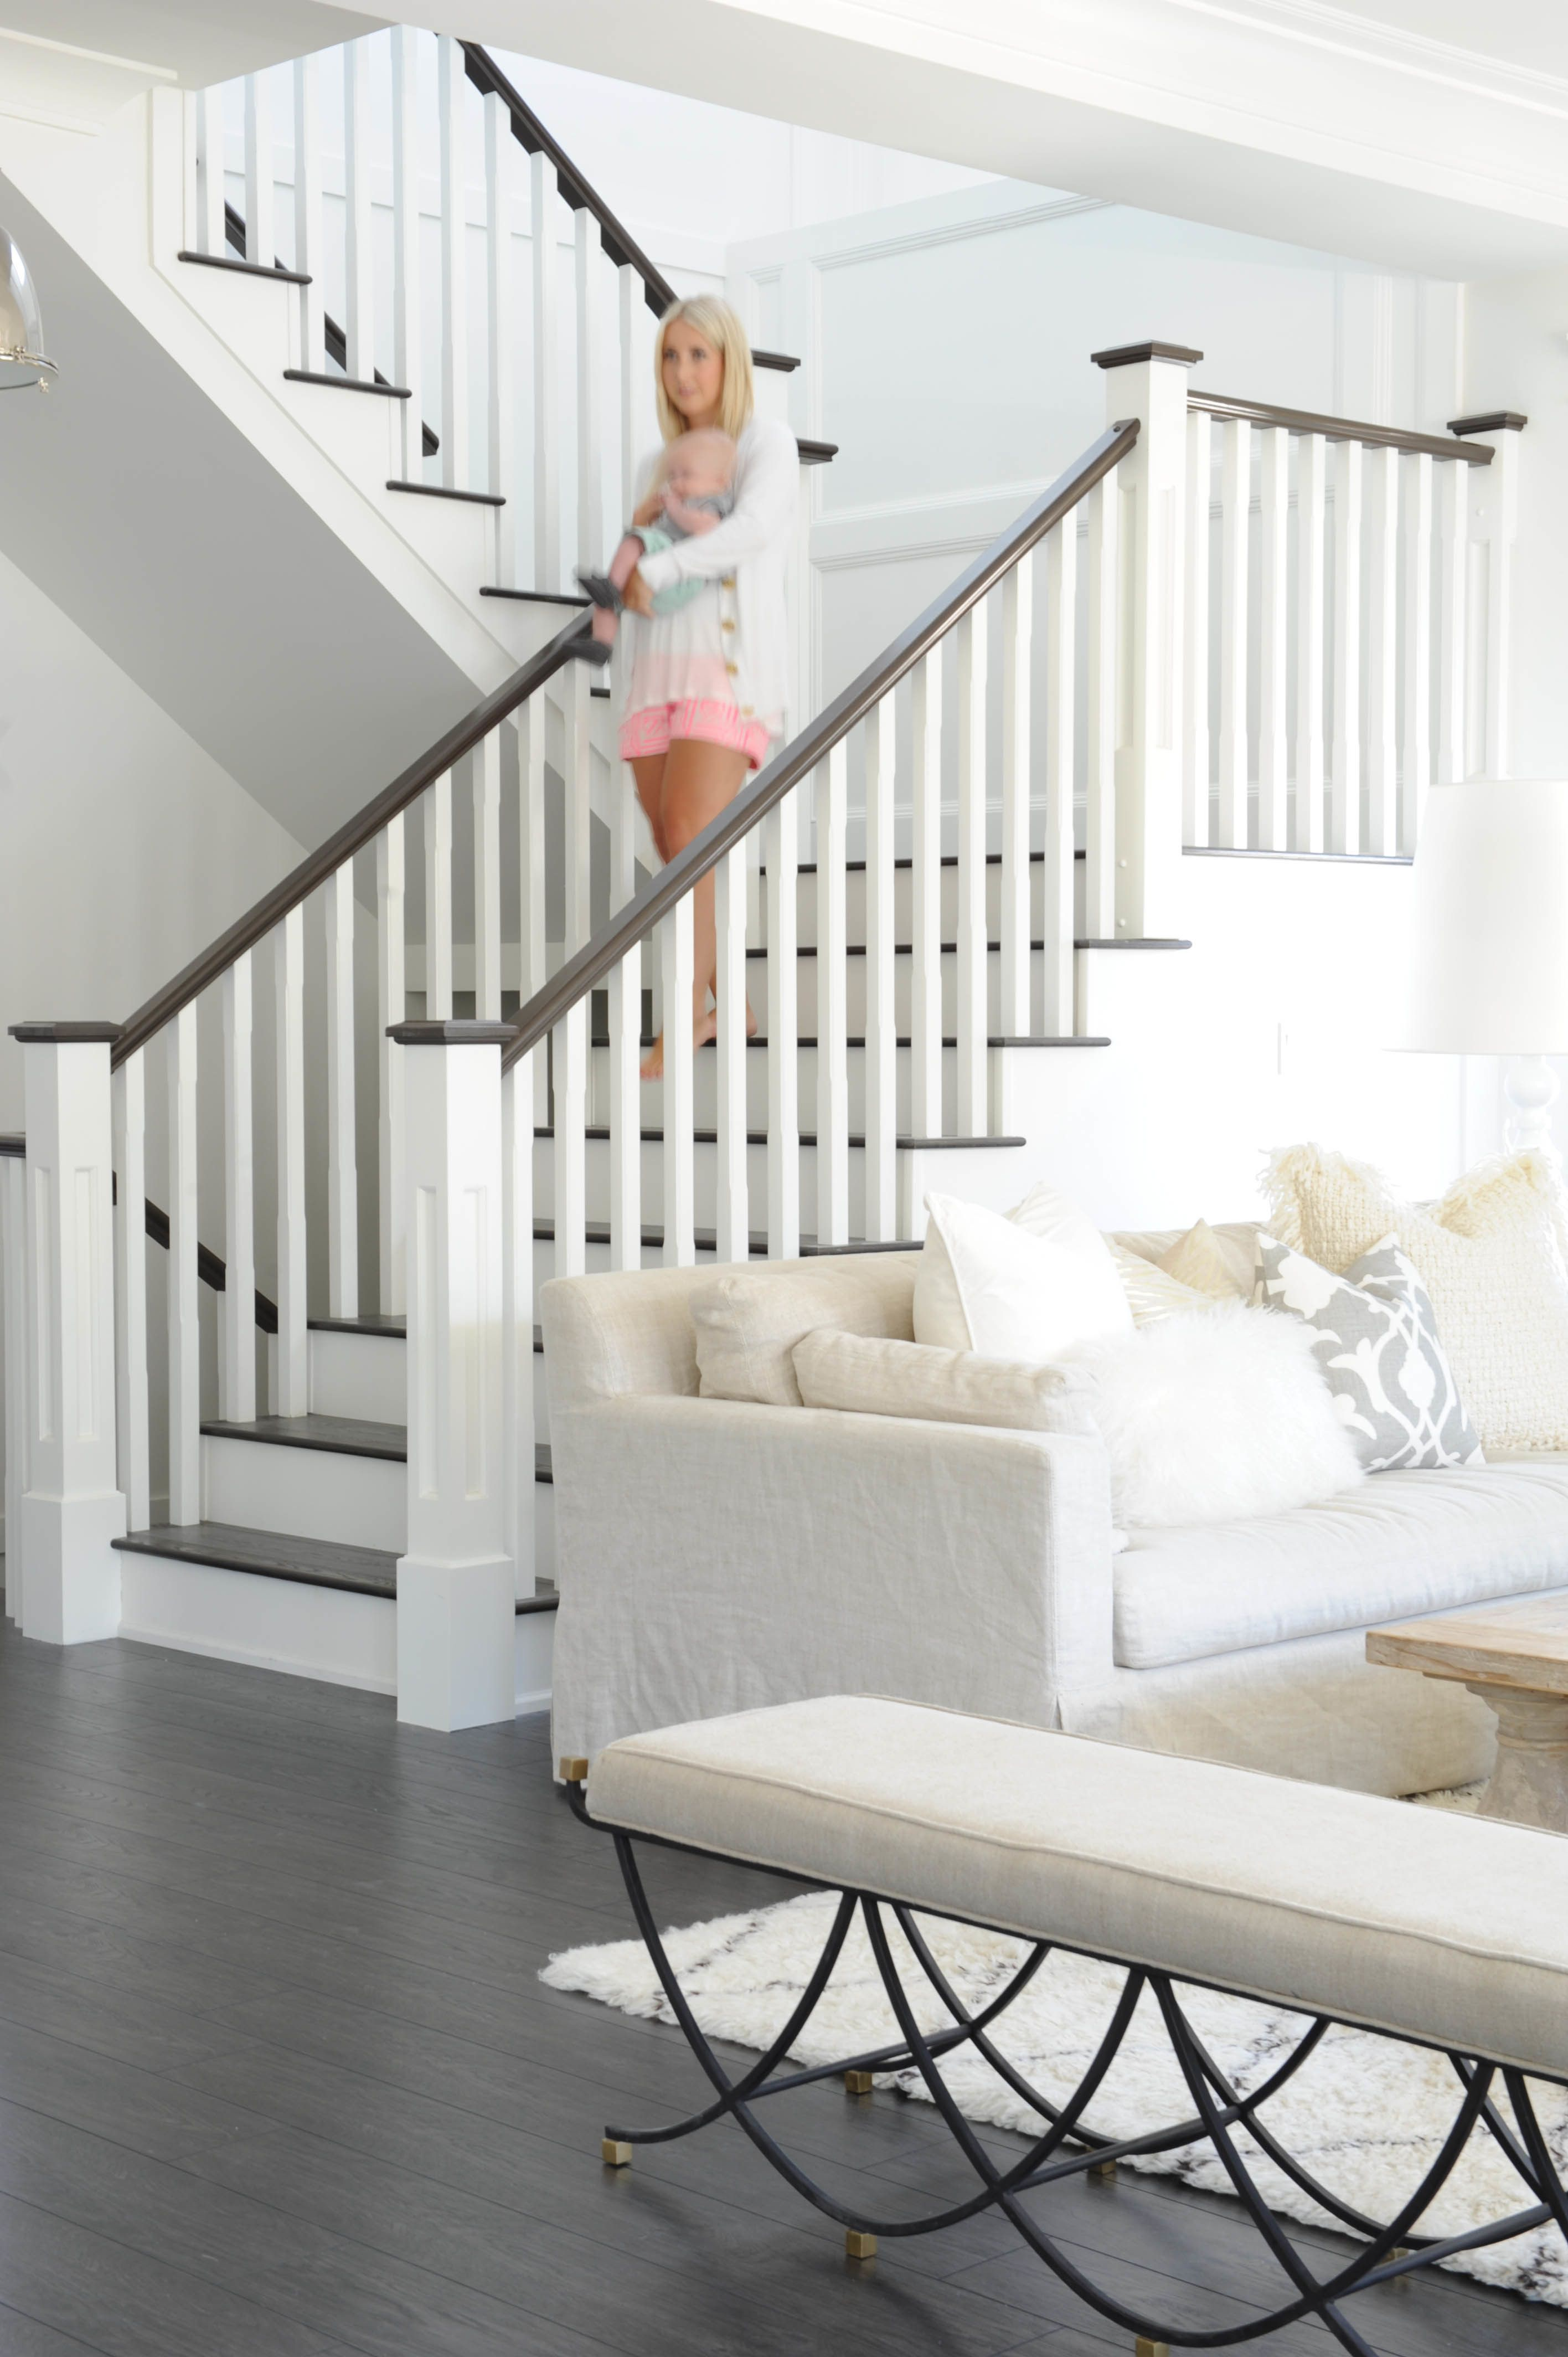 Get the Look: Fresh White Home with Pops of Pink | Staircases, Bench ...